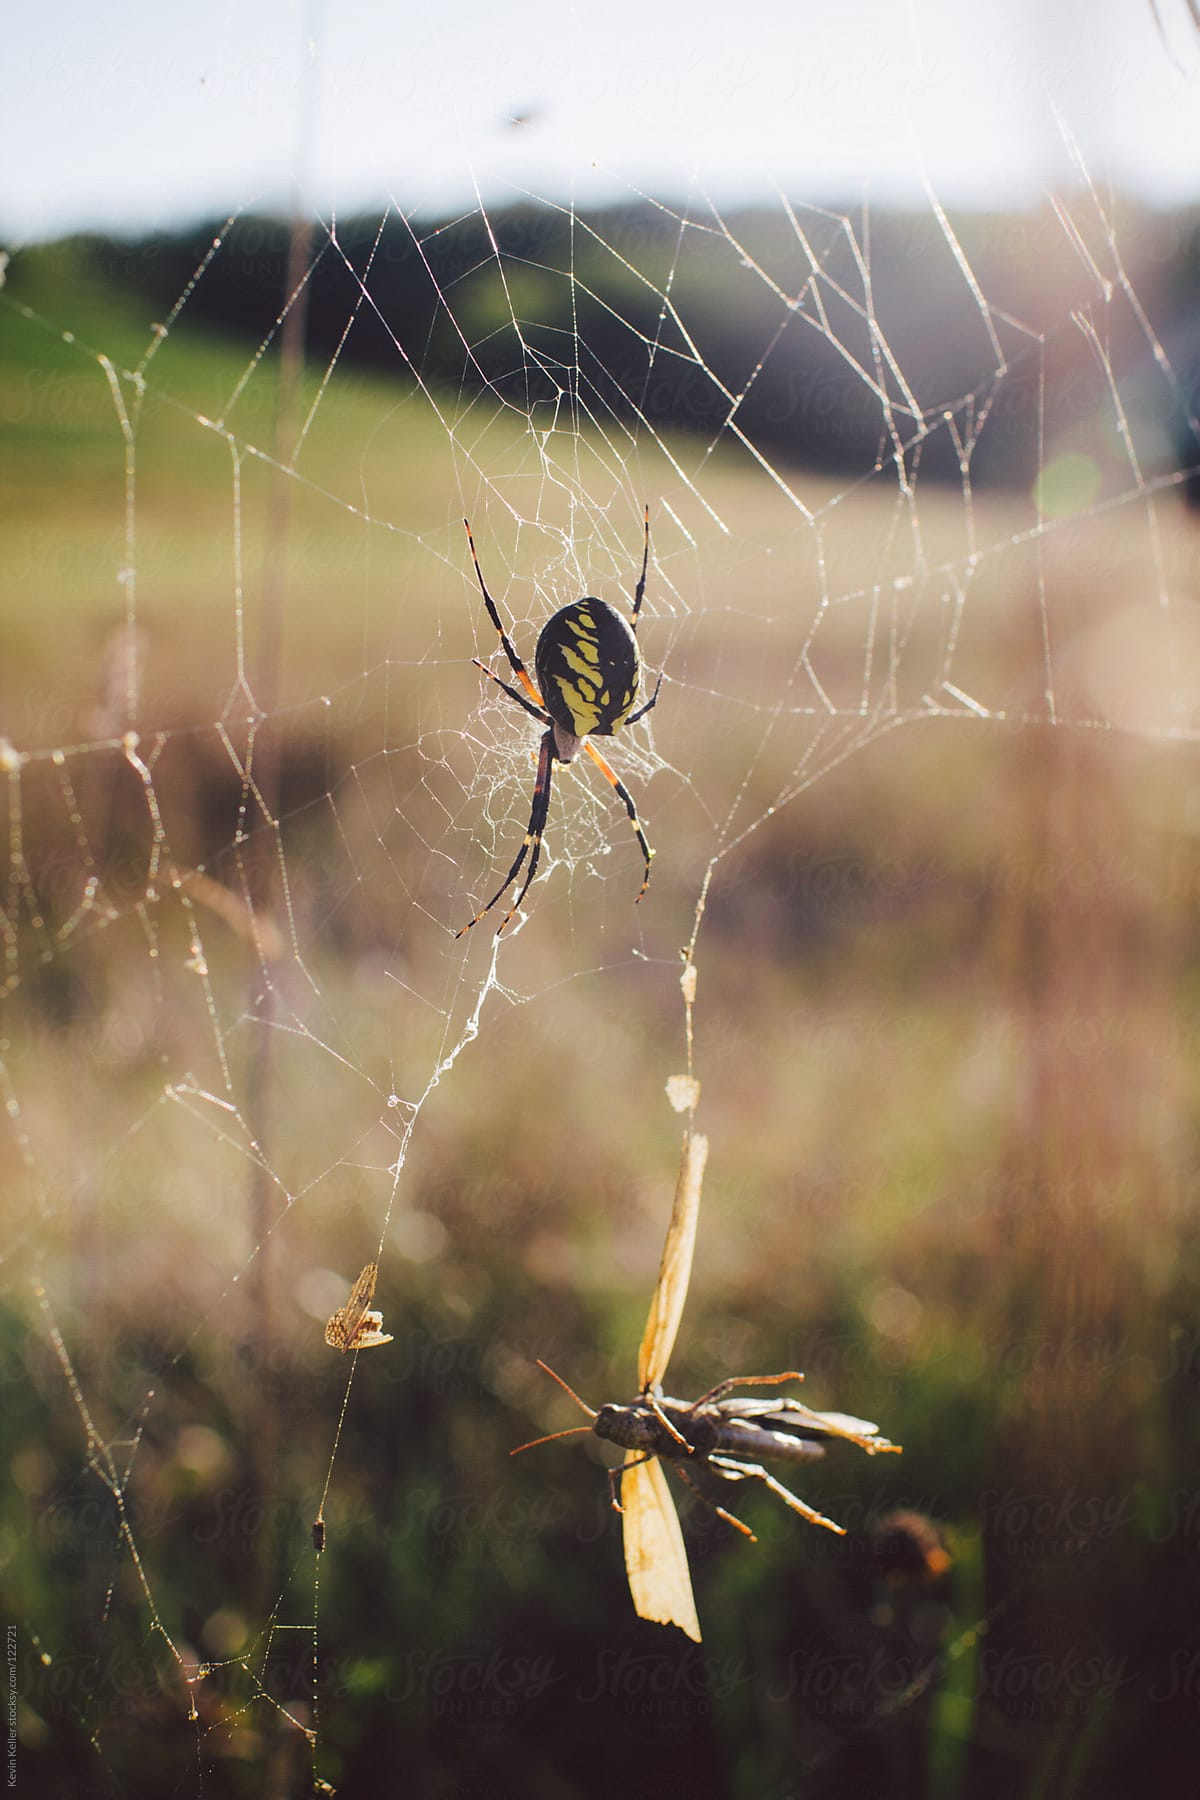 Orb Weaving Spider And Locust Caught In Web | Stocksy United